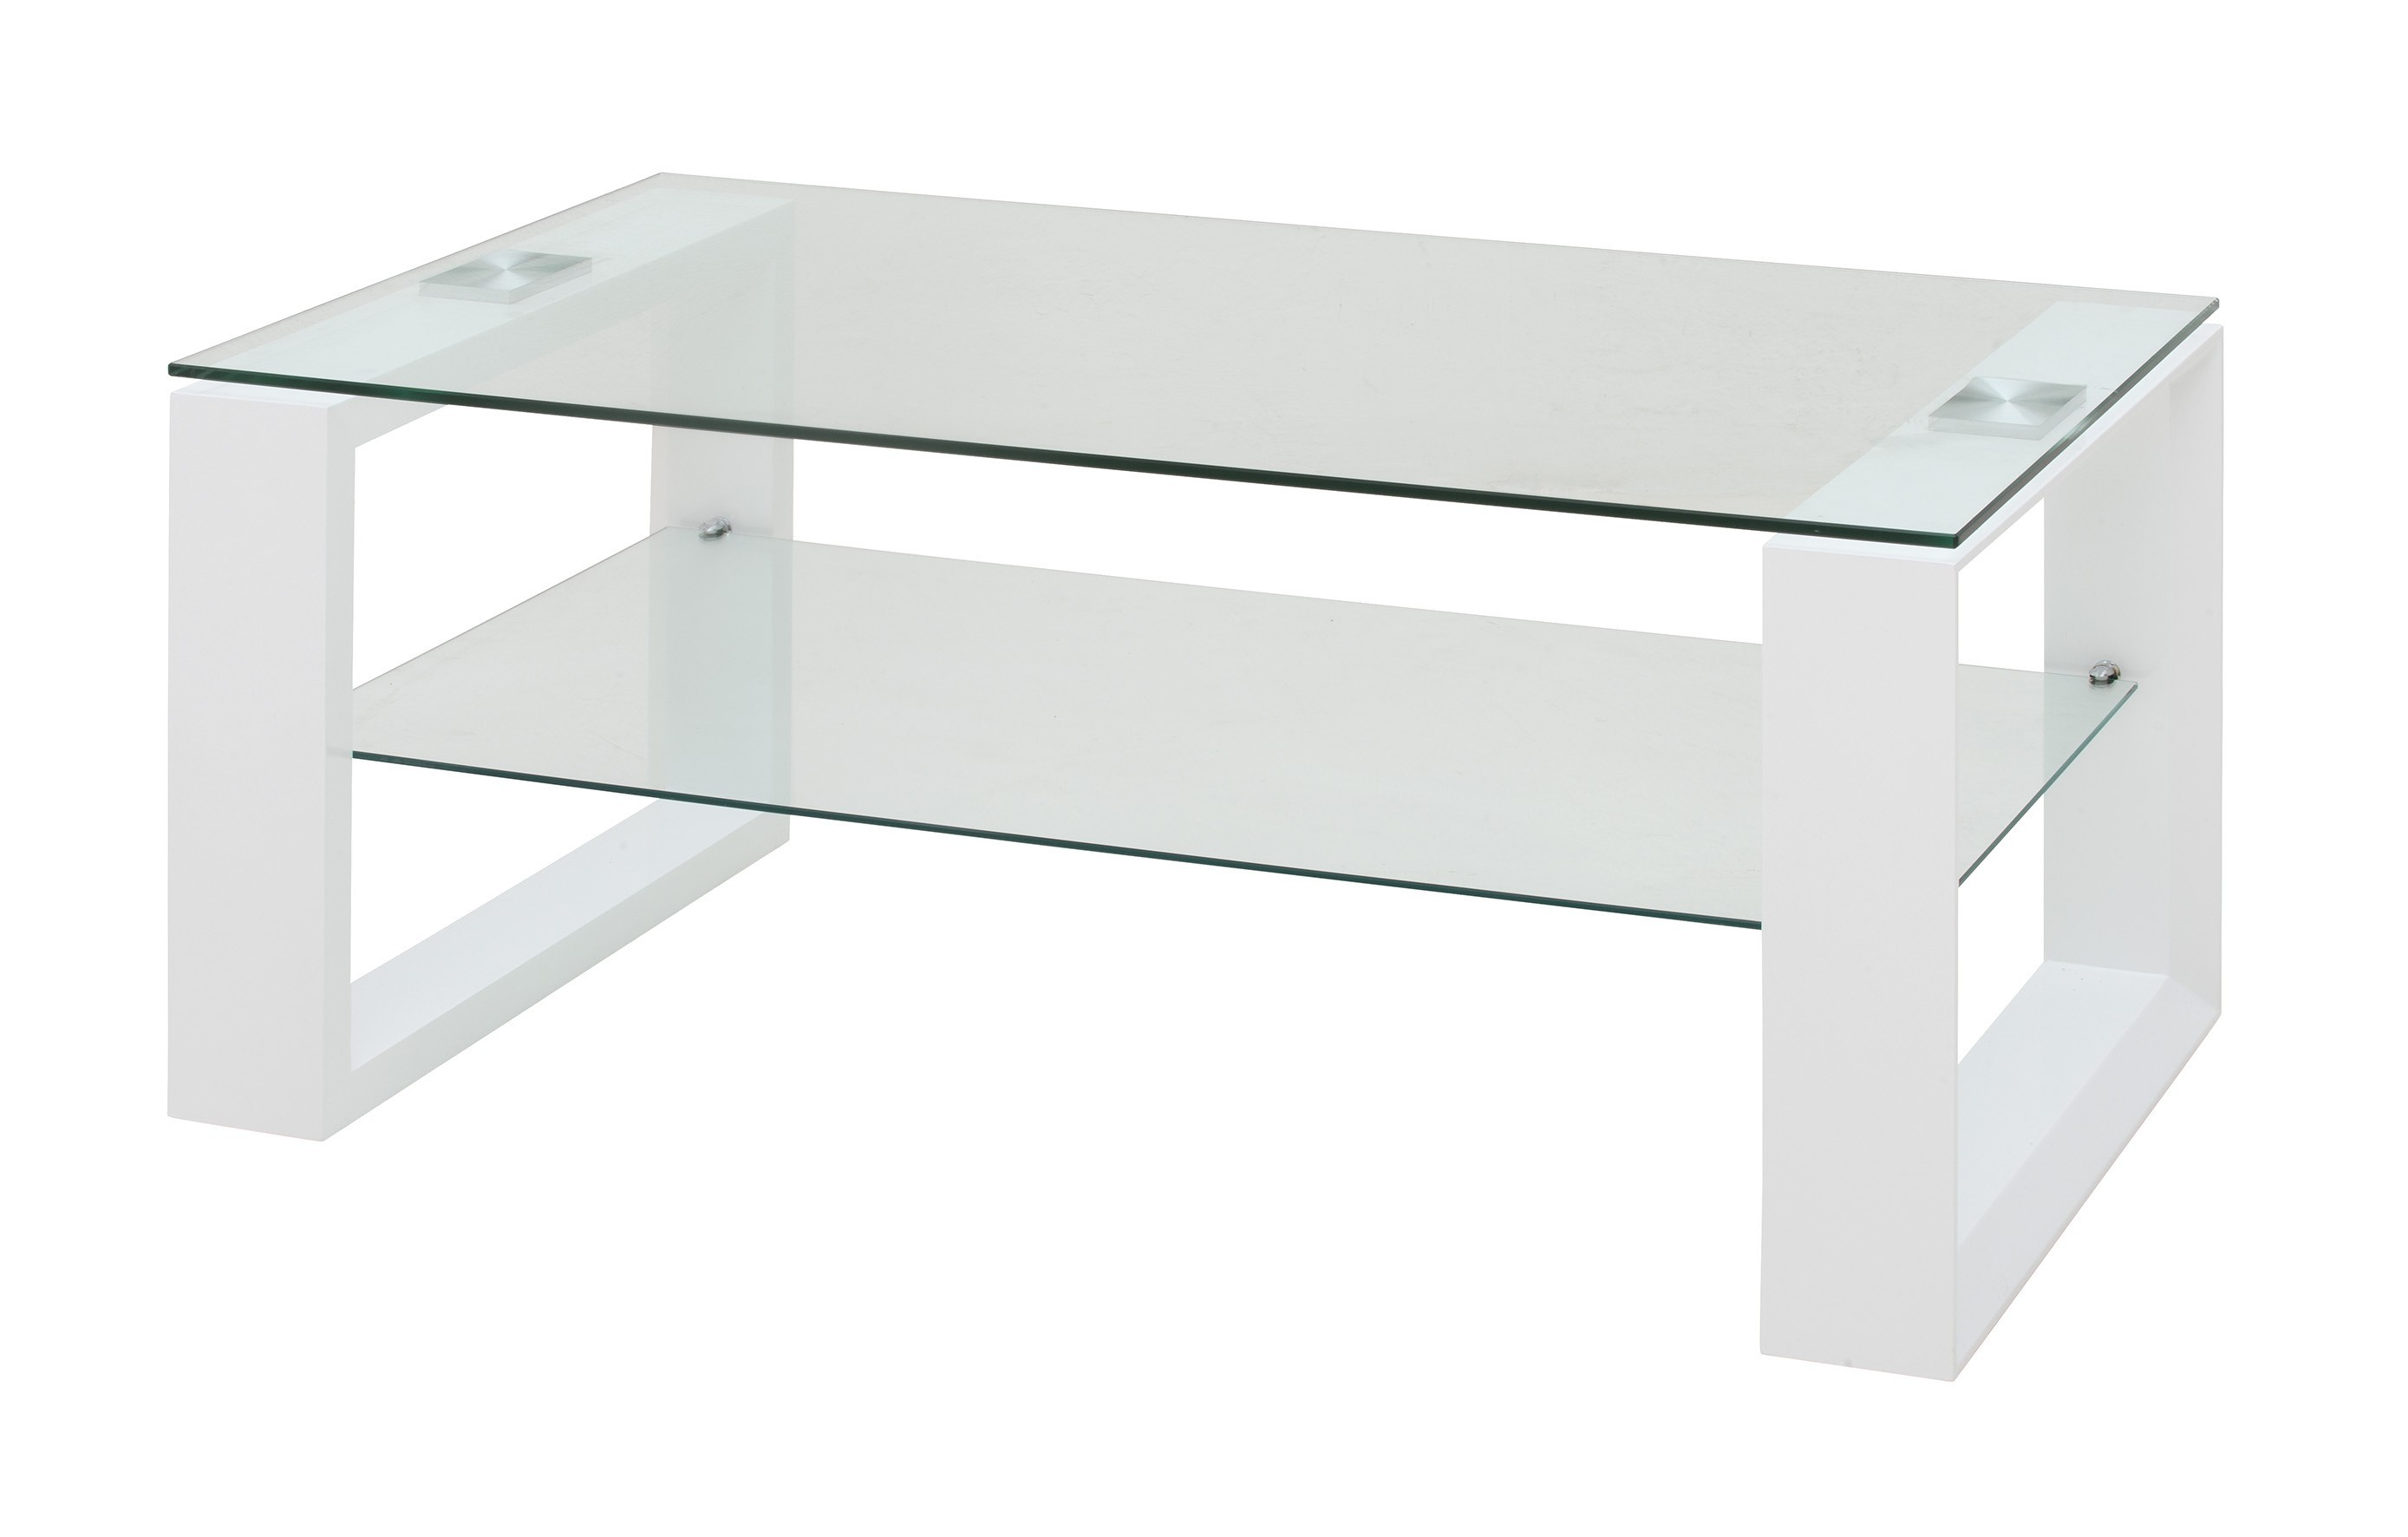 Table basse en verre castorama